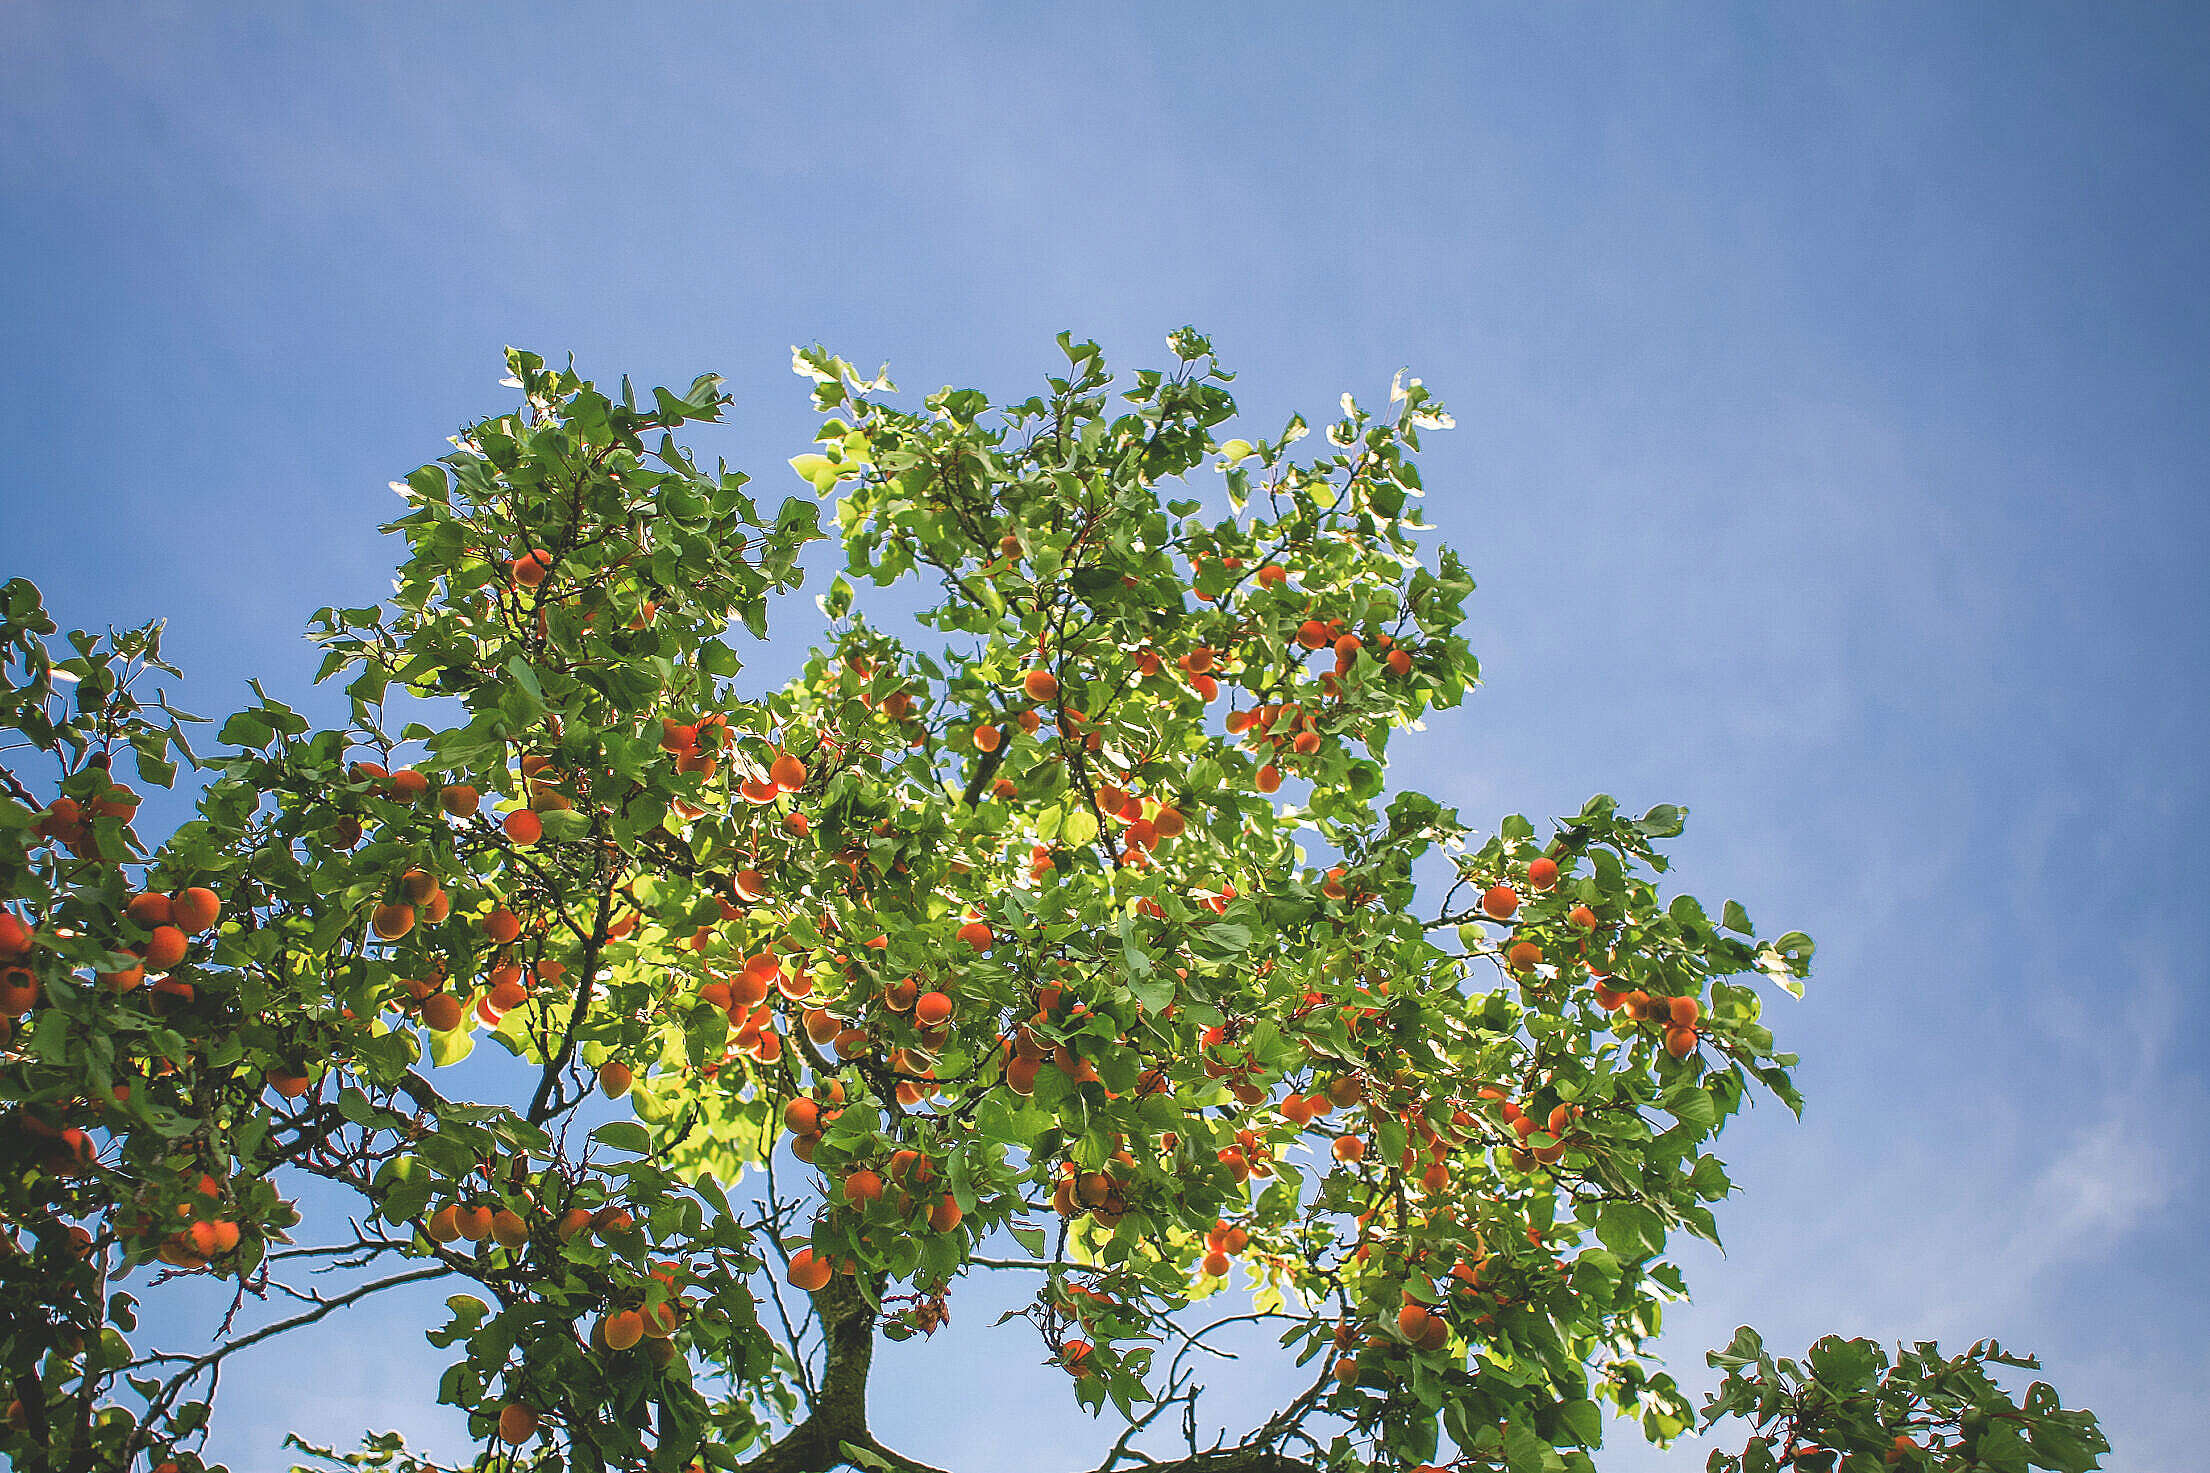 Apricot Tree in the Sky Free Stock Photo